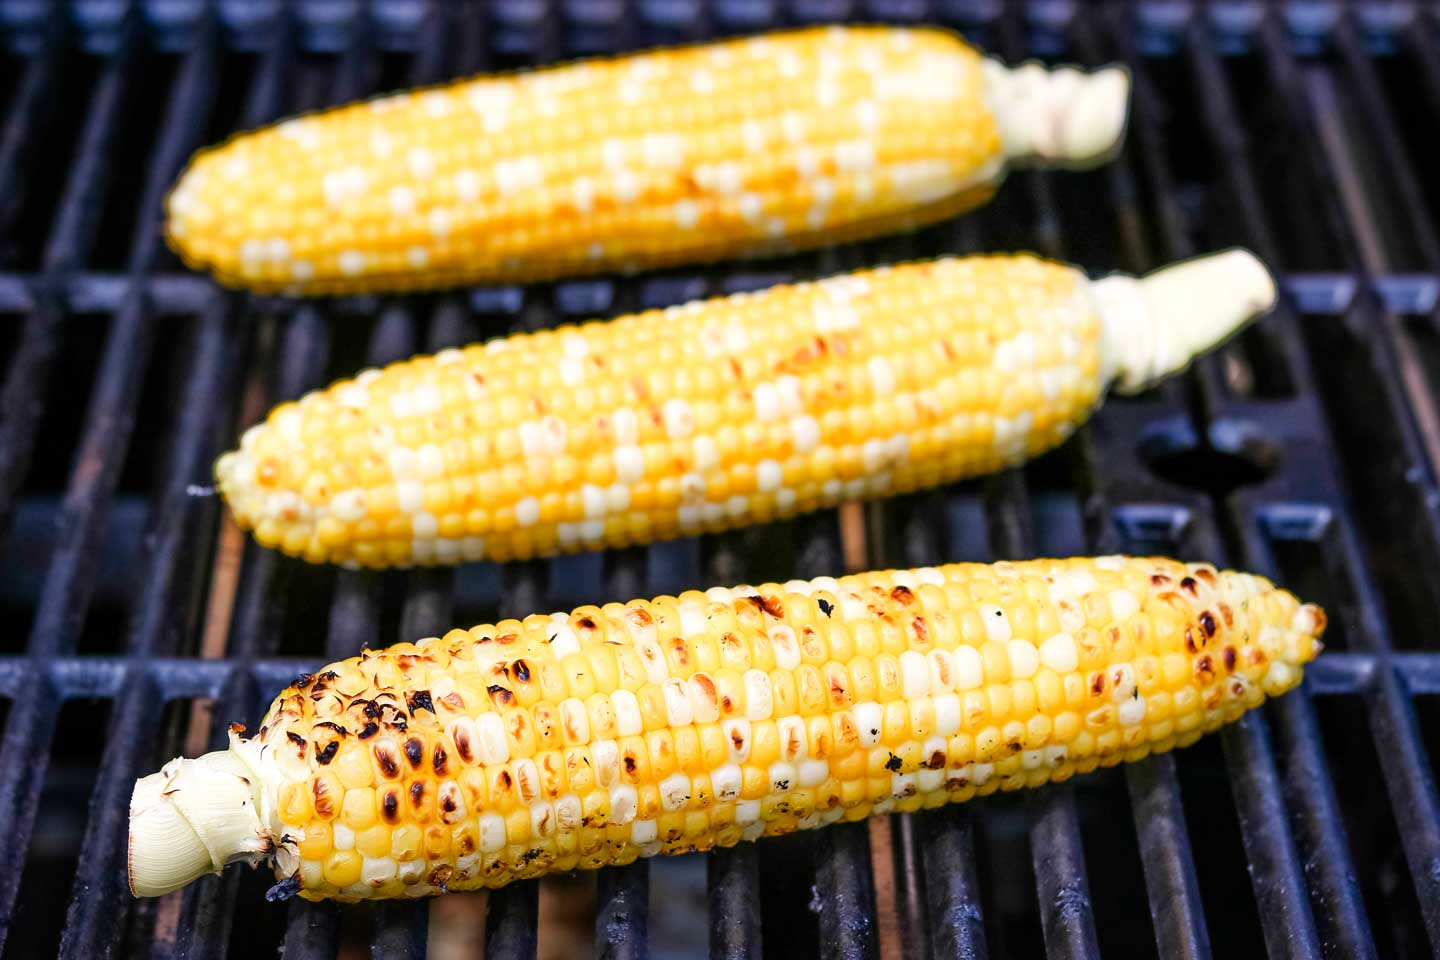 three ears of husked sweet corn on an outdoor grill, with some toasty brown spots developing on them